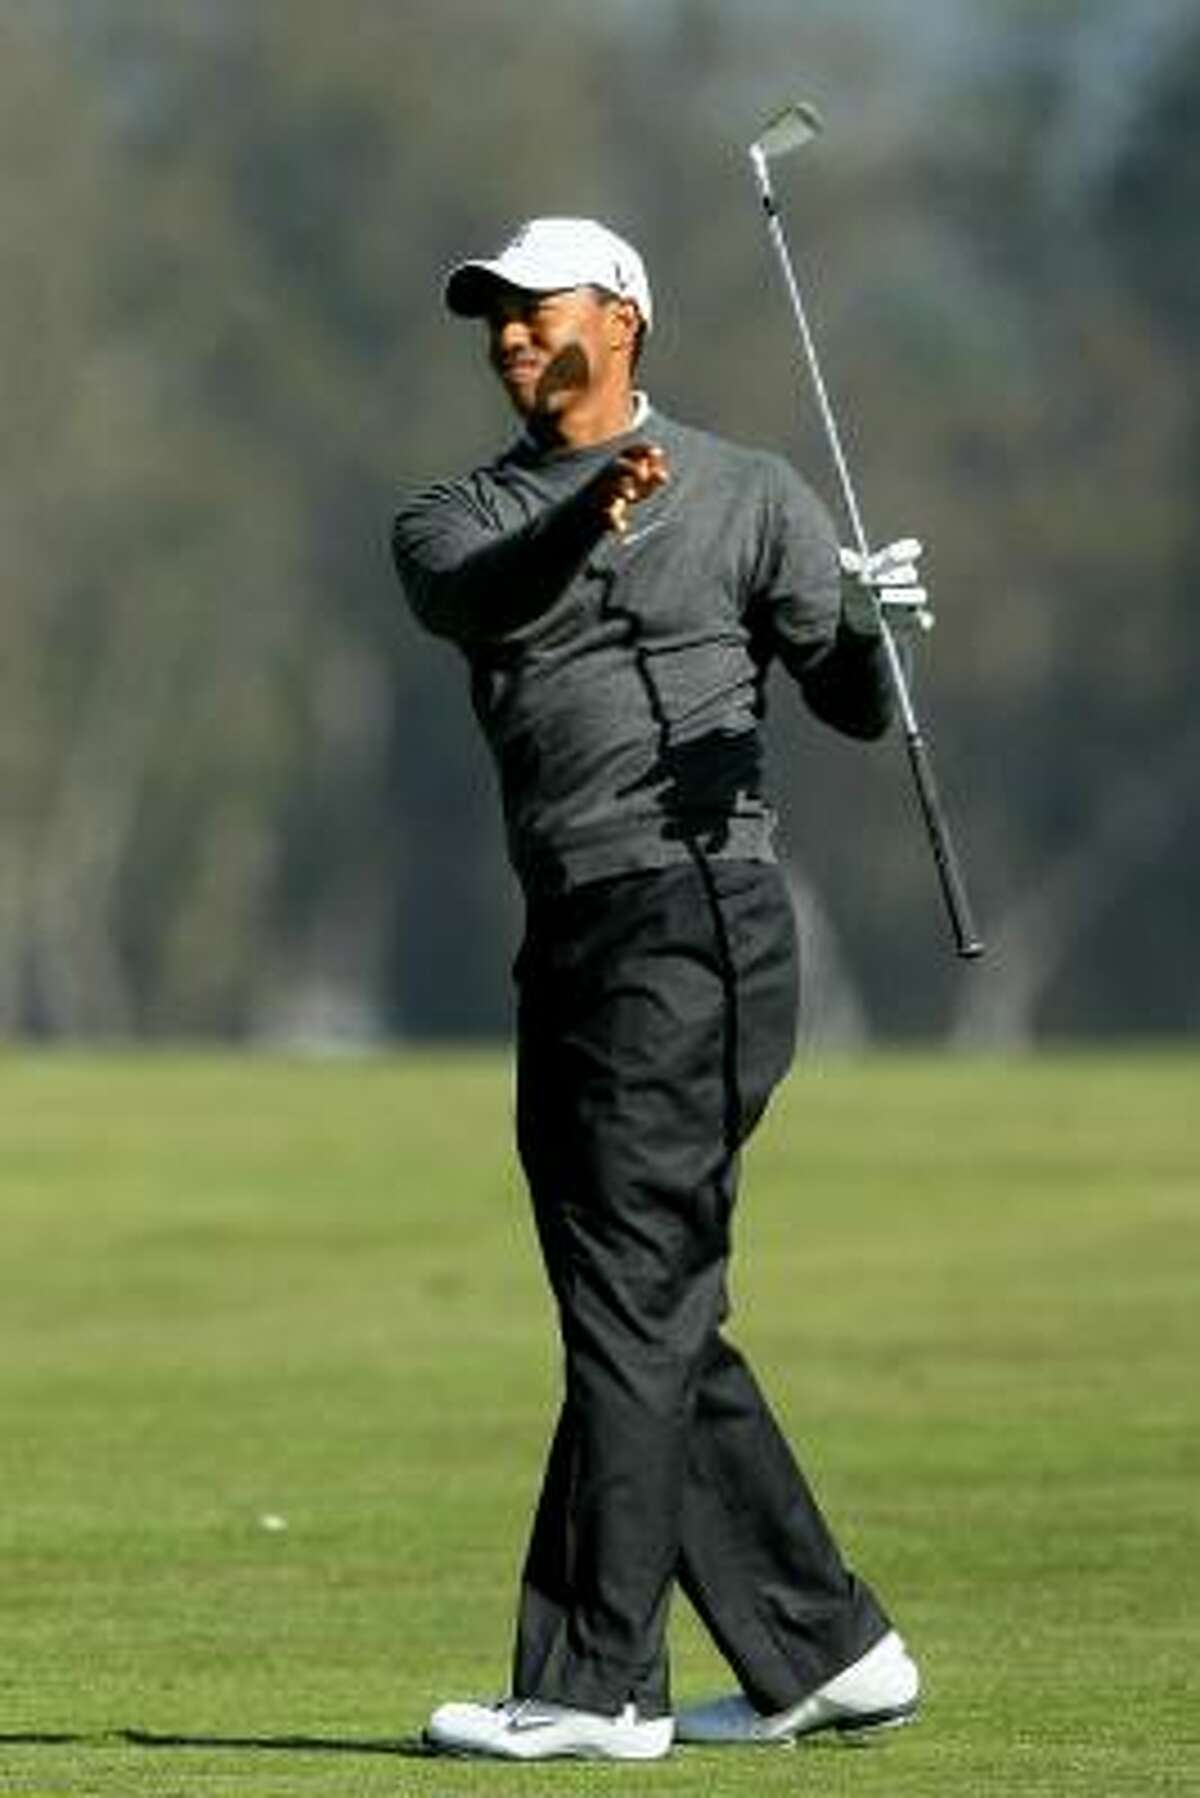 Tiger Woods finished 3-over-par 74 after the first round.